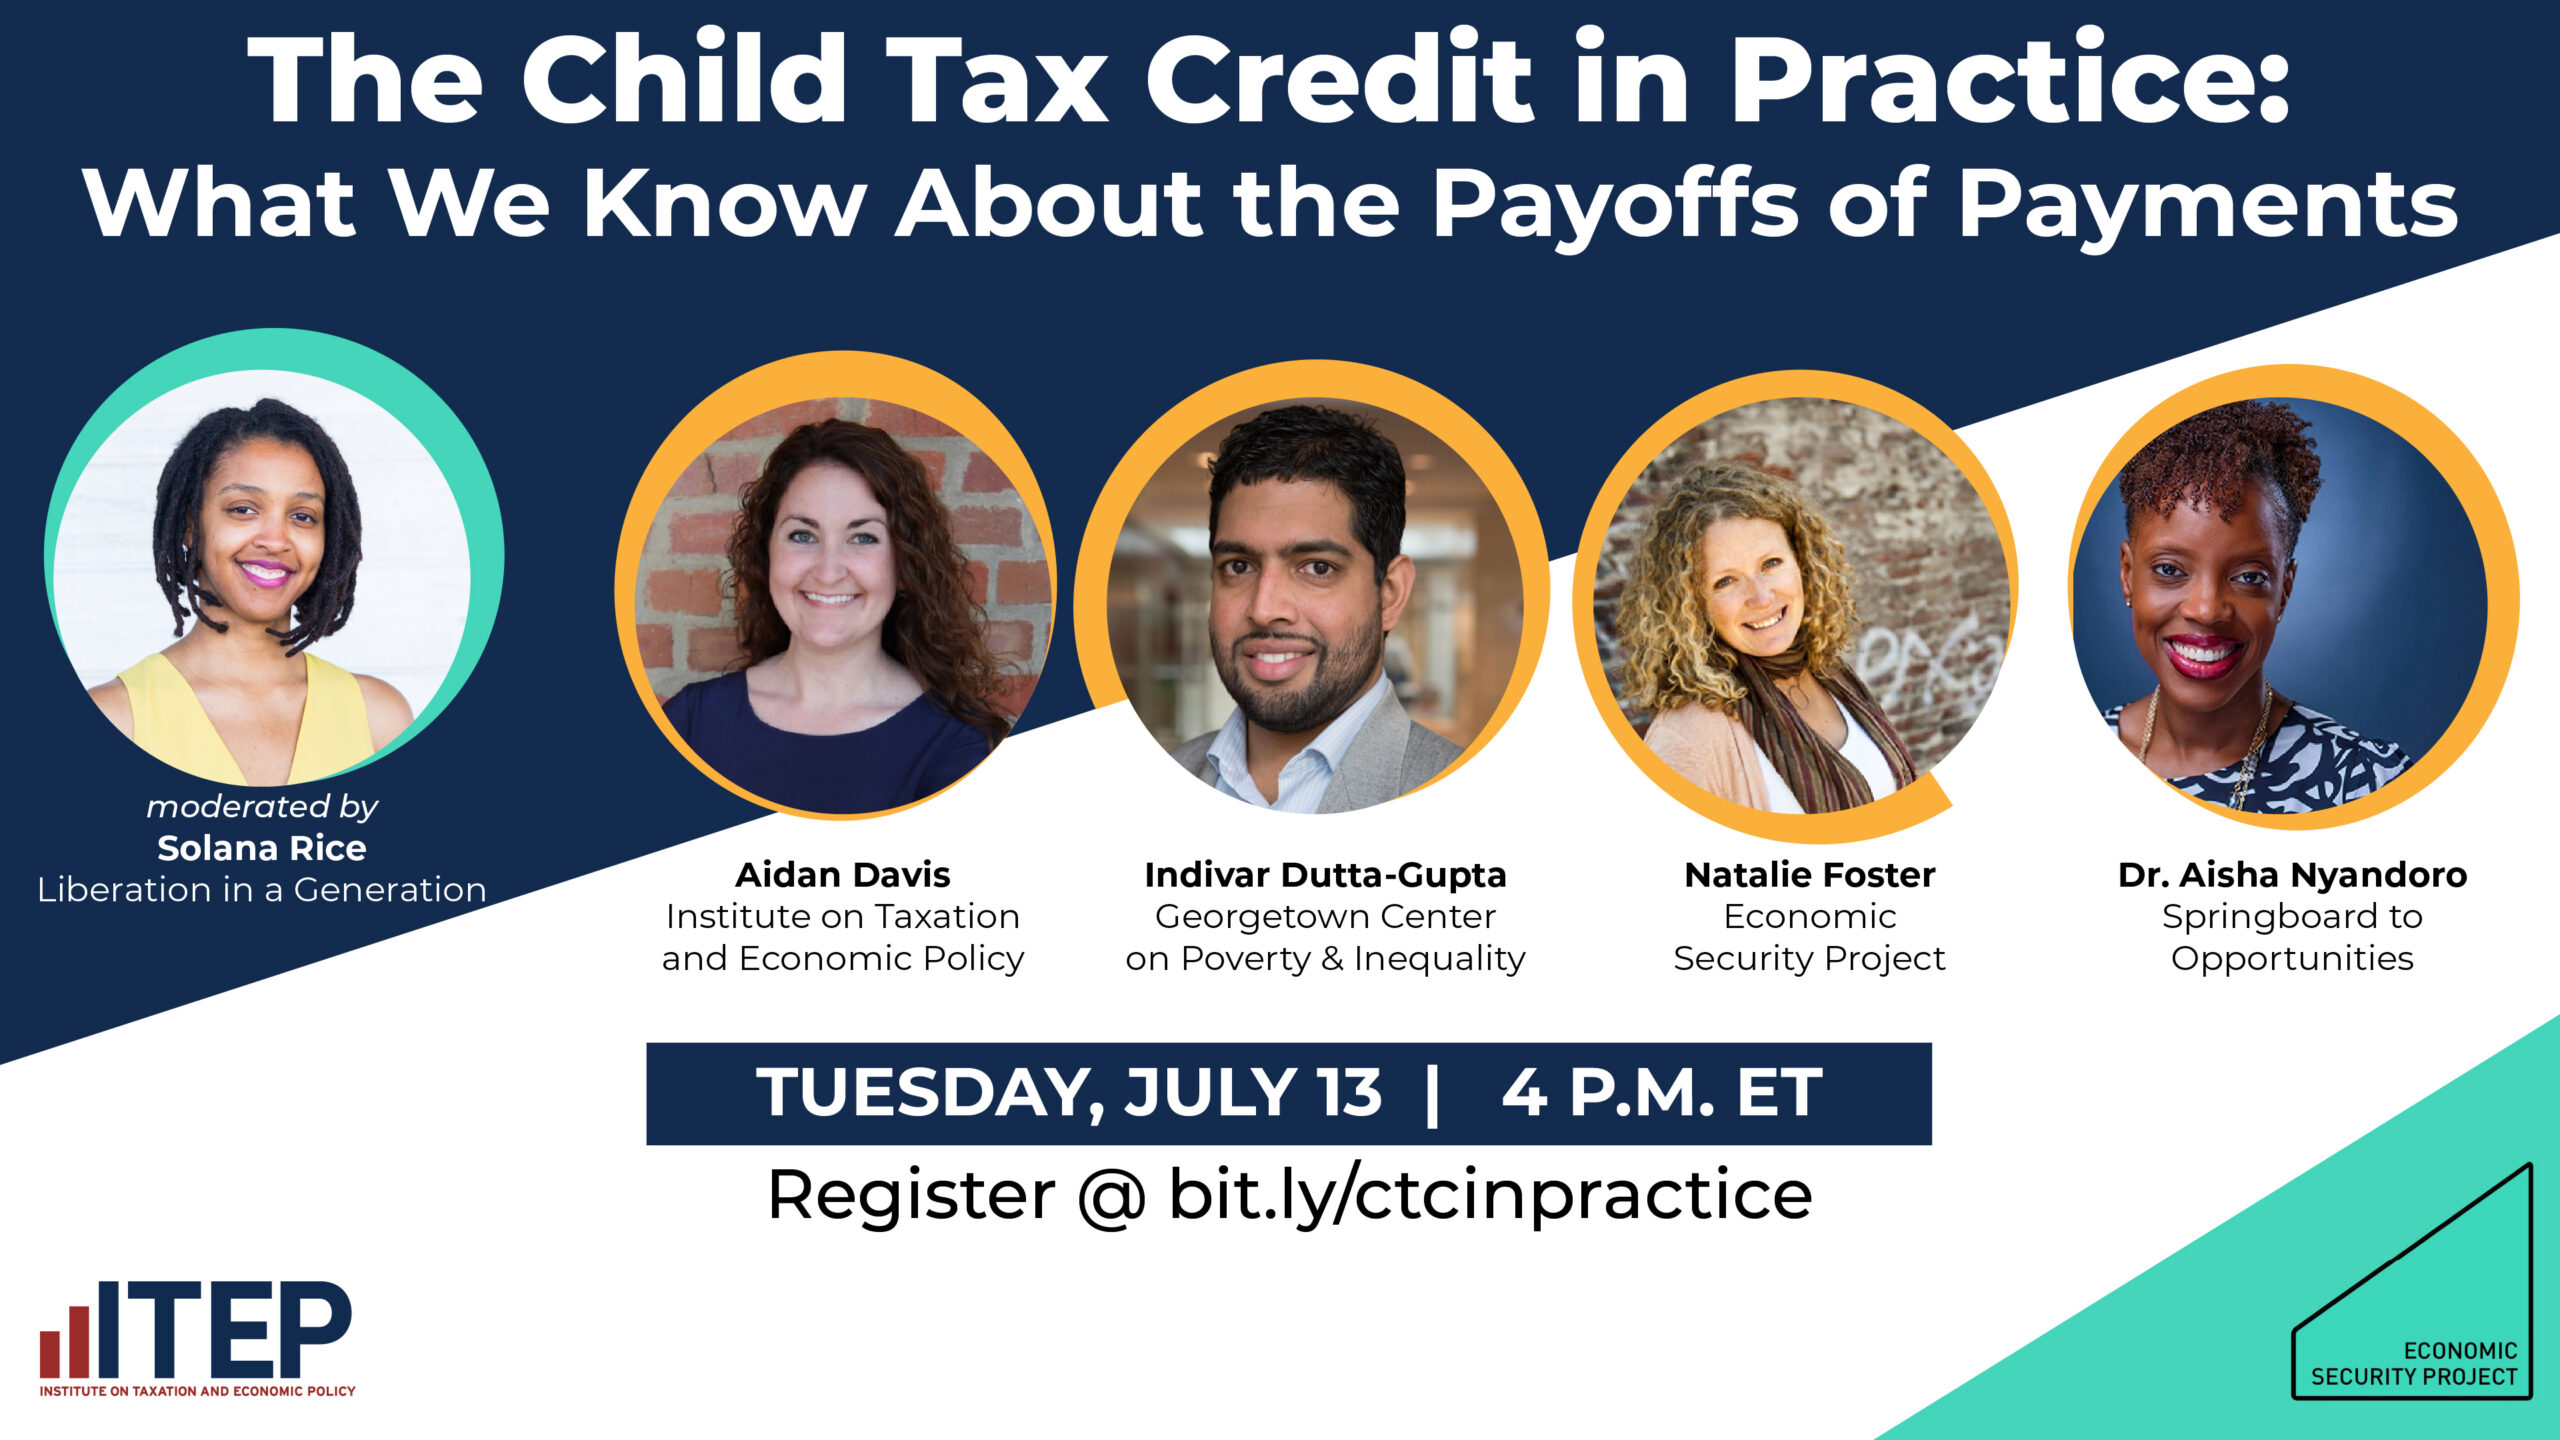 The Payoffs of Child Tax Credit Payments